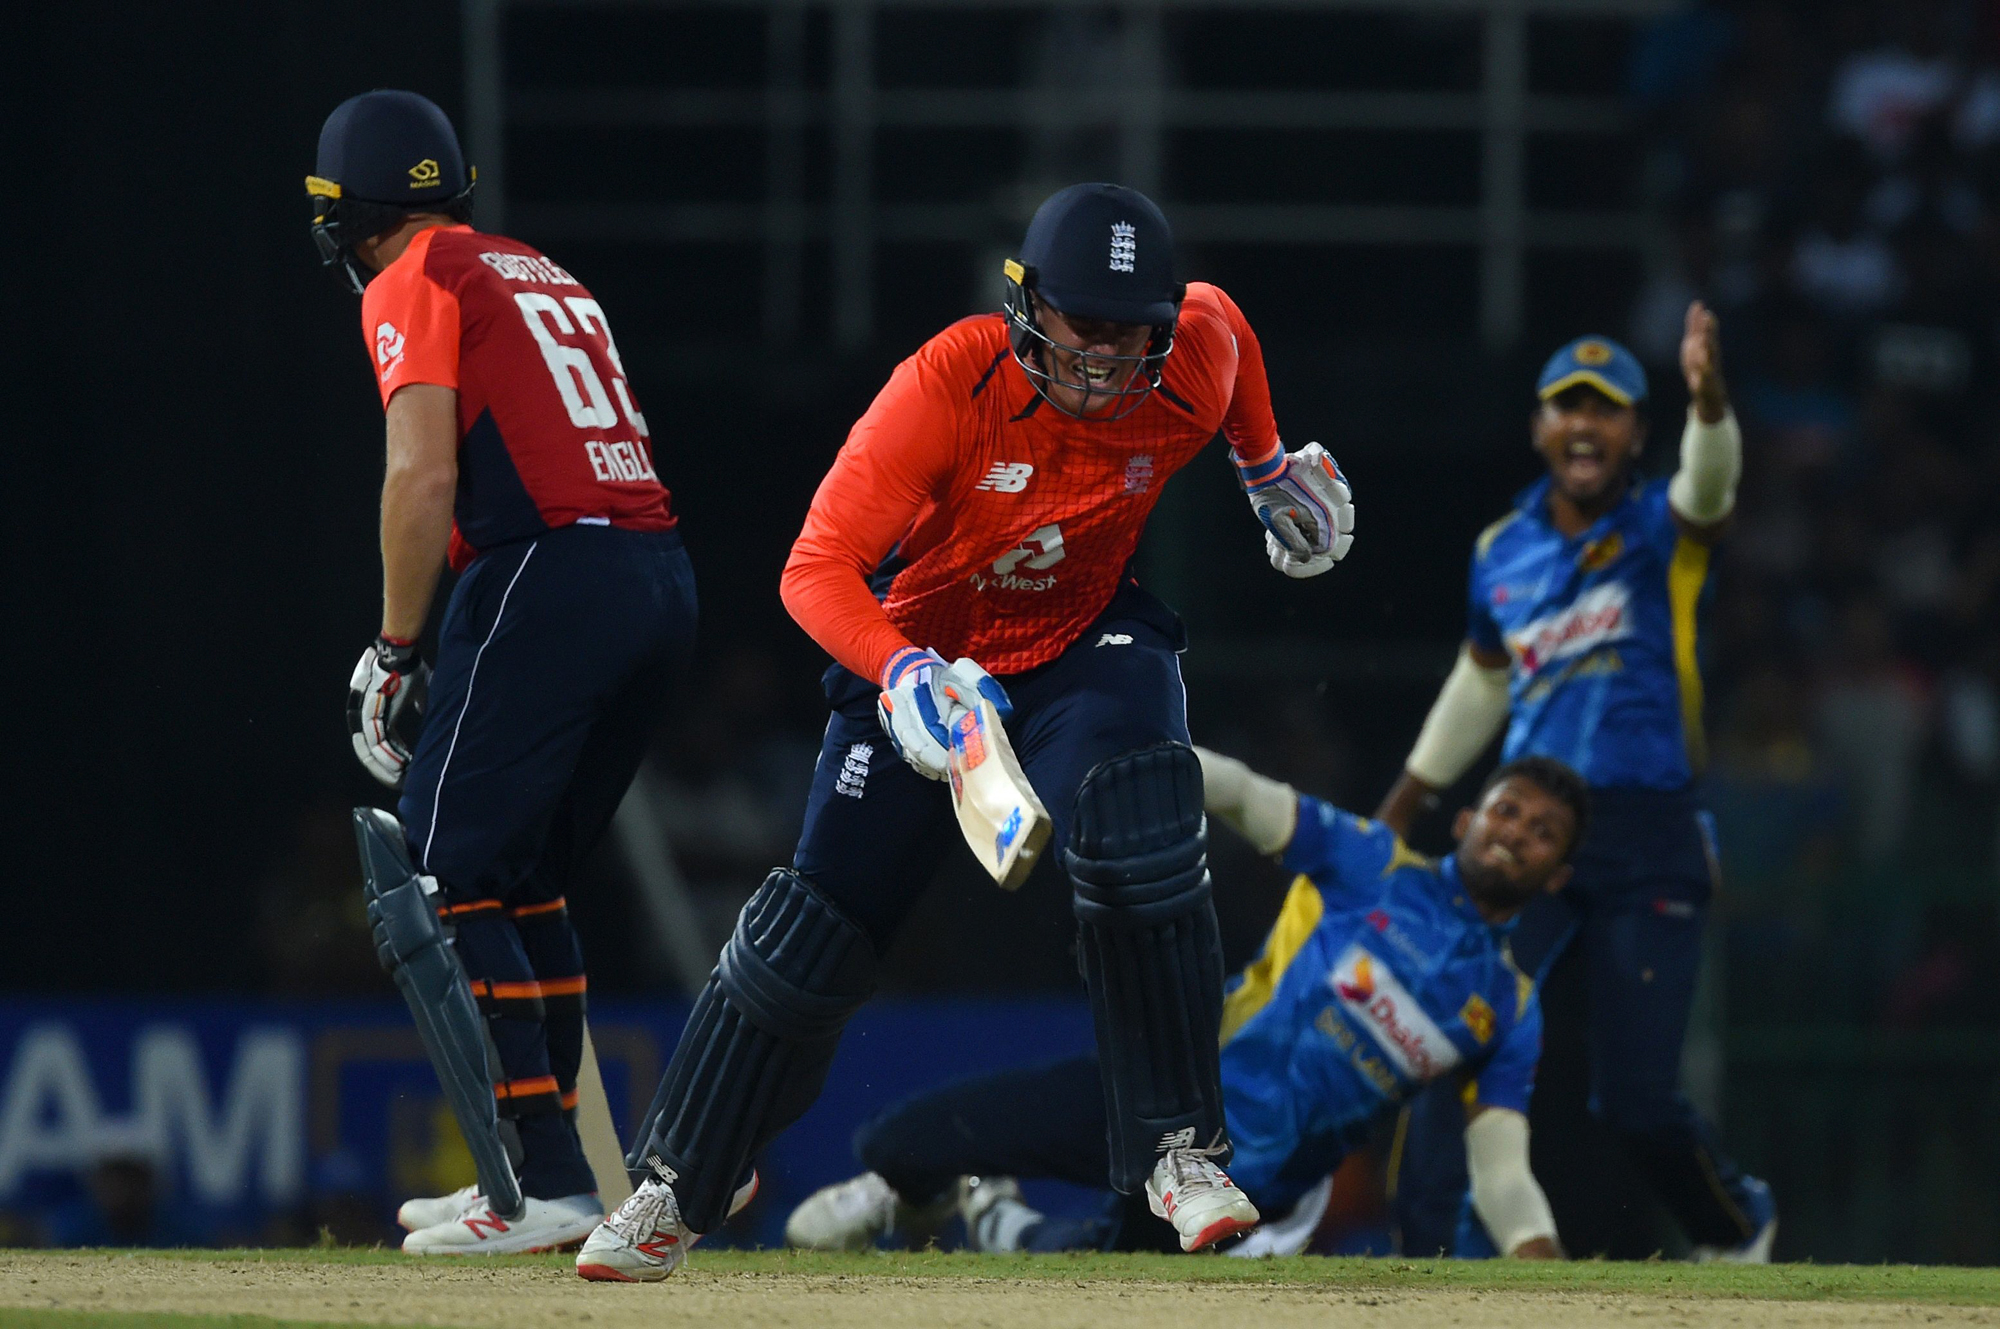 England cricketer Jason Roy (2L) runs between the wickets during the international Twenty20 cricket match between Sri Lanka and England at the R. Peremadasa Stadium in Colombo on October 27, 2018. (Photo by ISHARA S. KODIKARA / AFP)